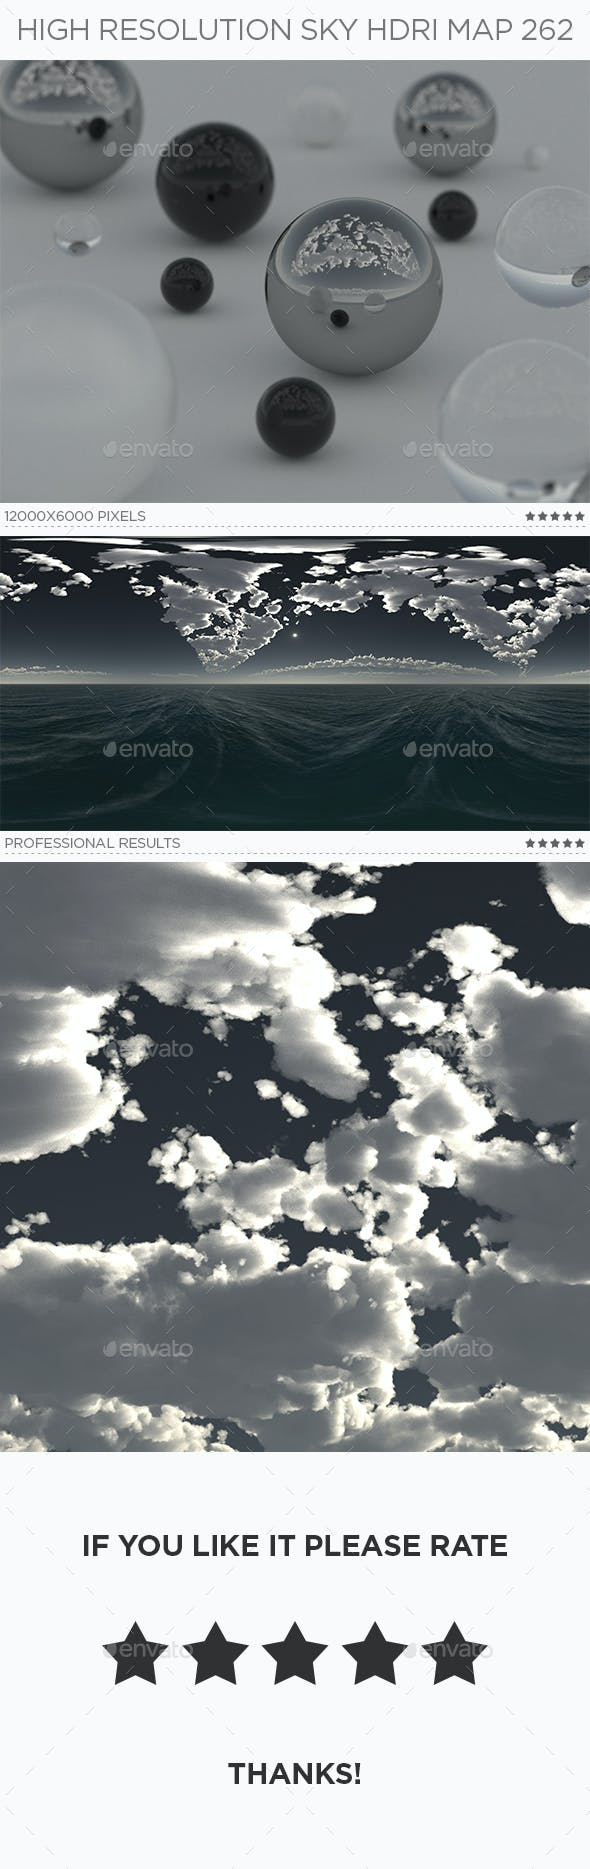 High Resolution Sky HDRi Map 262 - 3DOcean Item for Sale